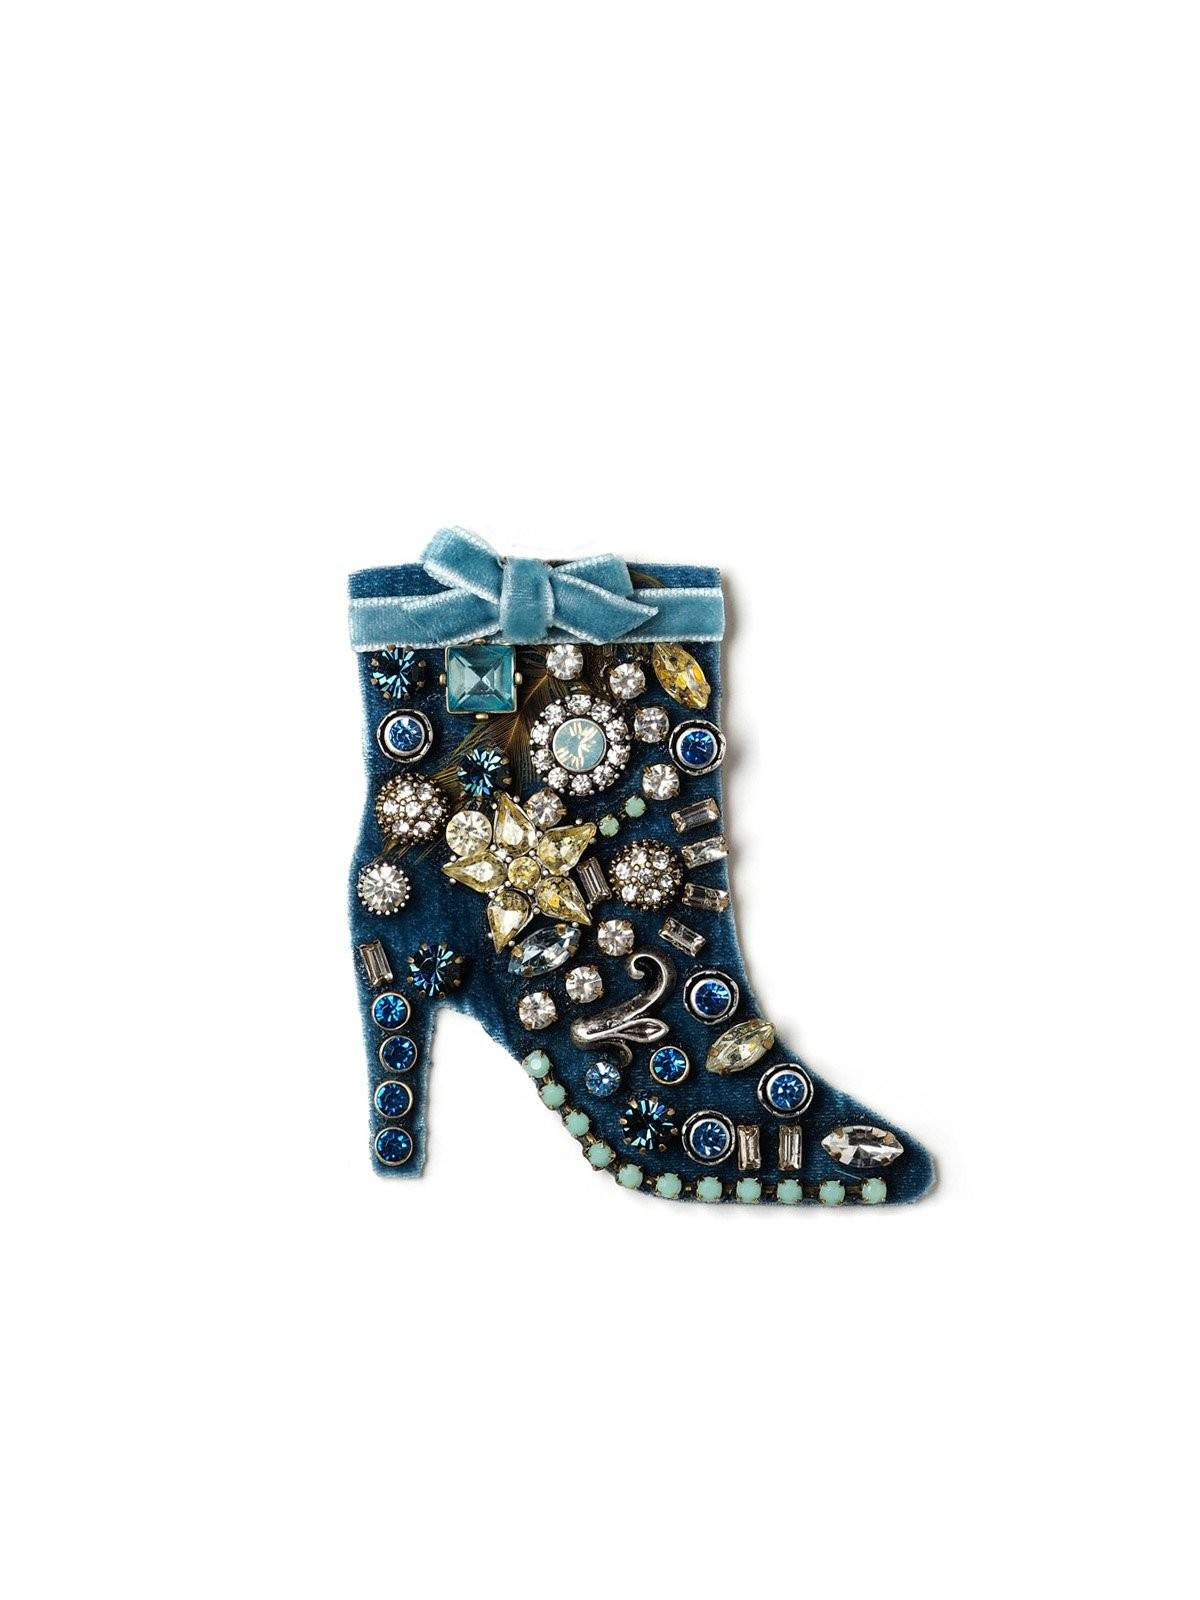 Blue Velvet Boot Holiday Pin #ORP21